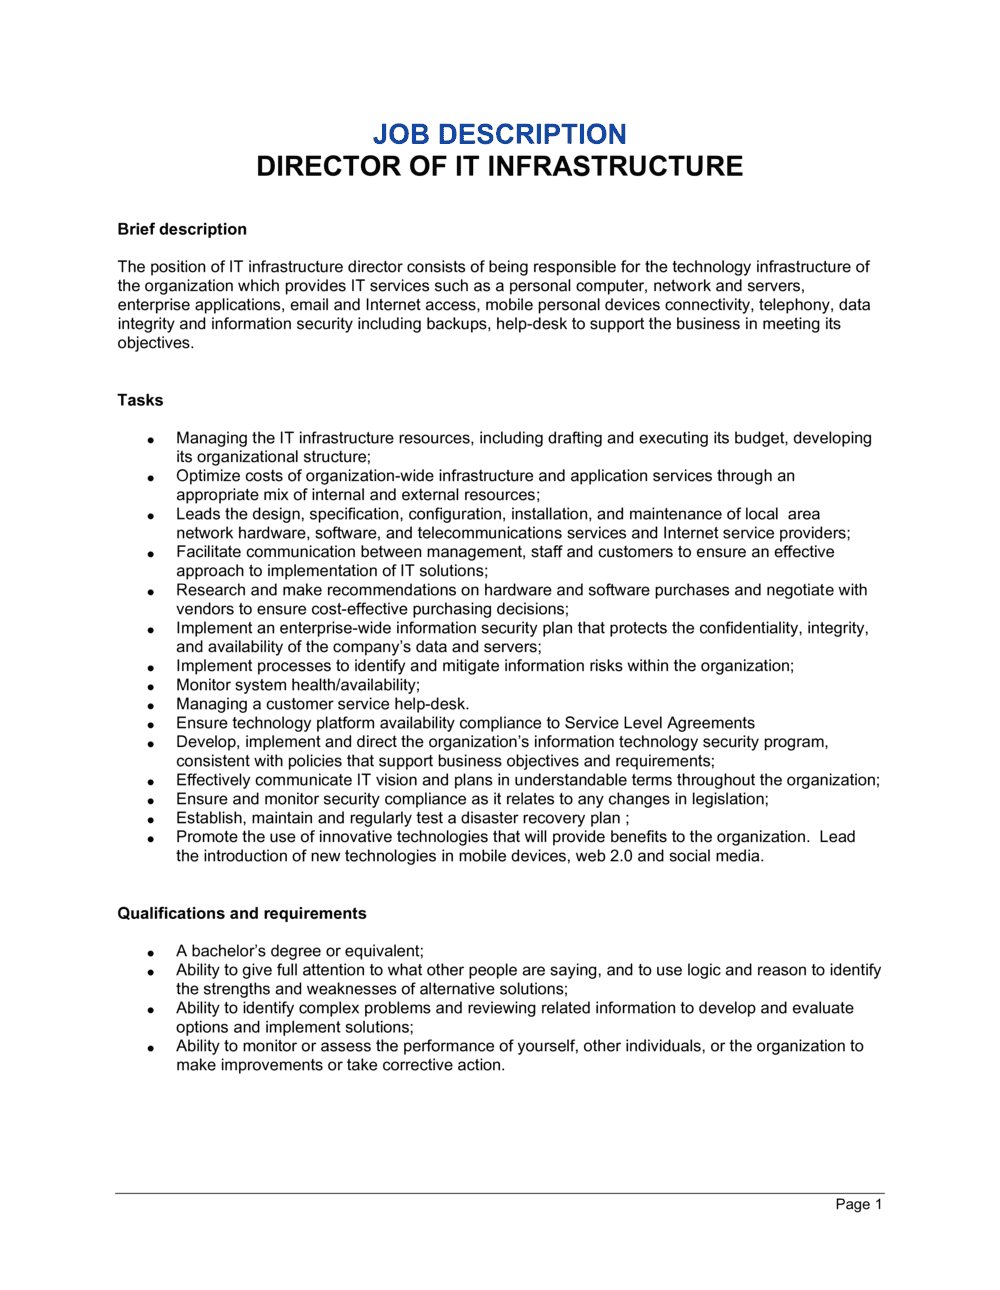 Business-in-a-Box's Director of IT Infrastructure Job Description Template